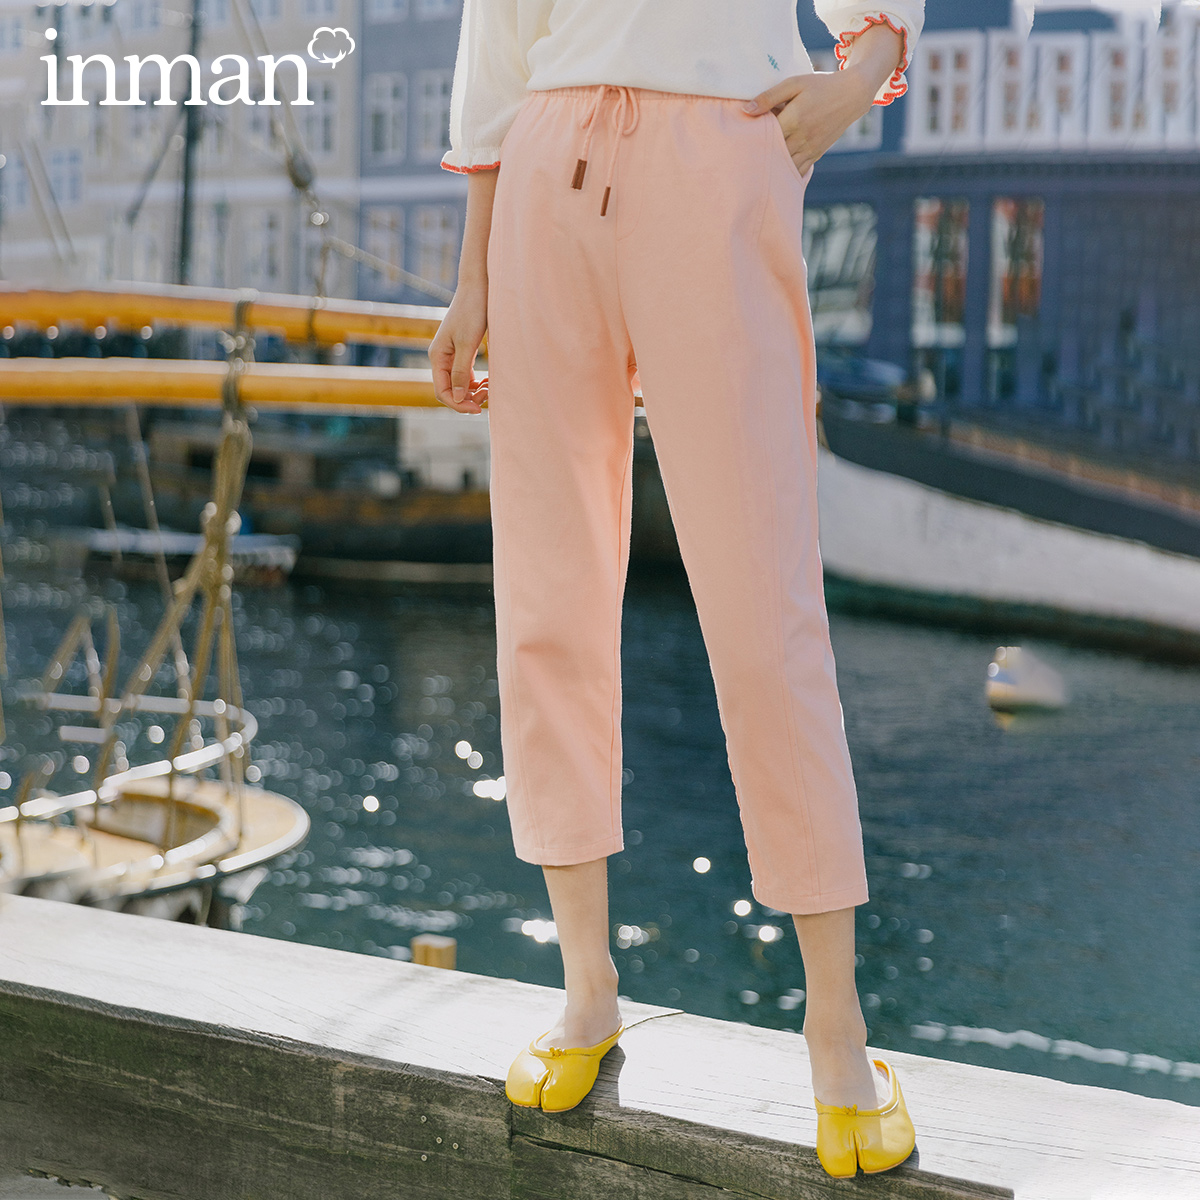 INMAN 2020 Spring New Arrival Literary High Waist Drawstring Elasticized Waist Loose Slimming Eight-cen Women Pant